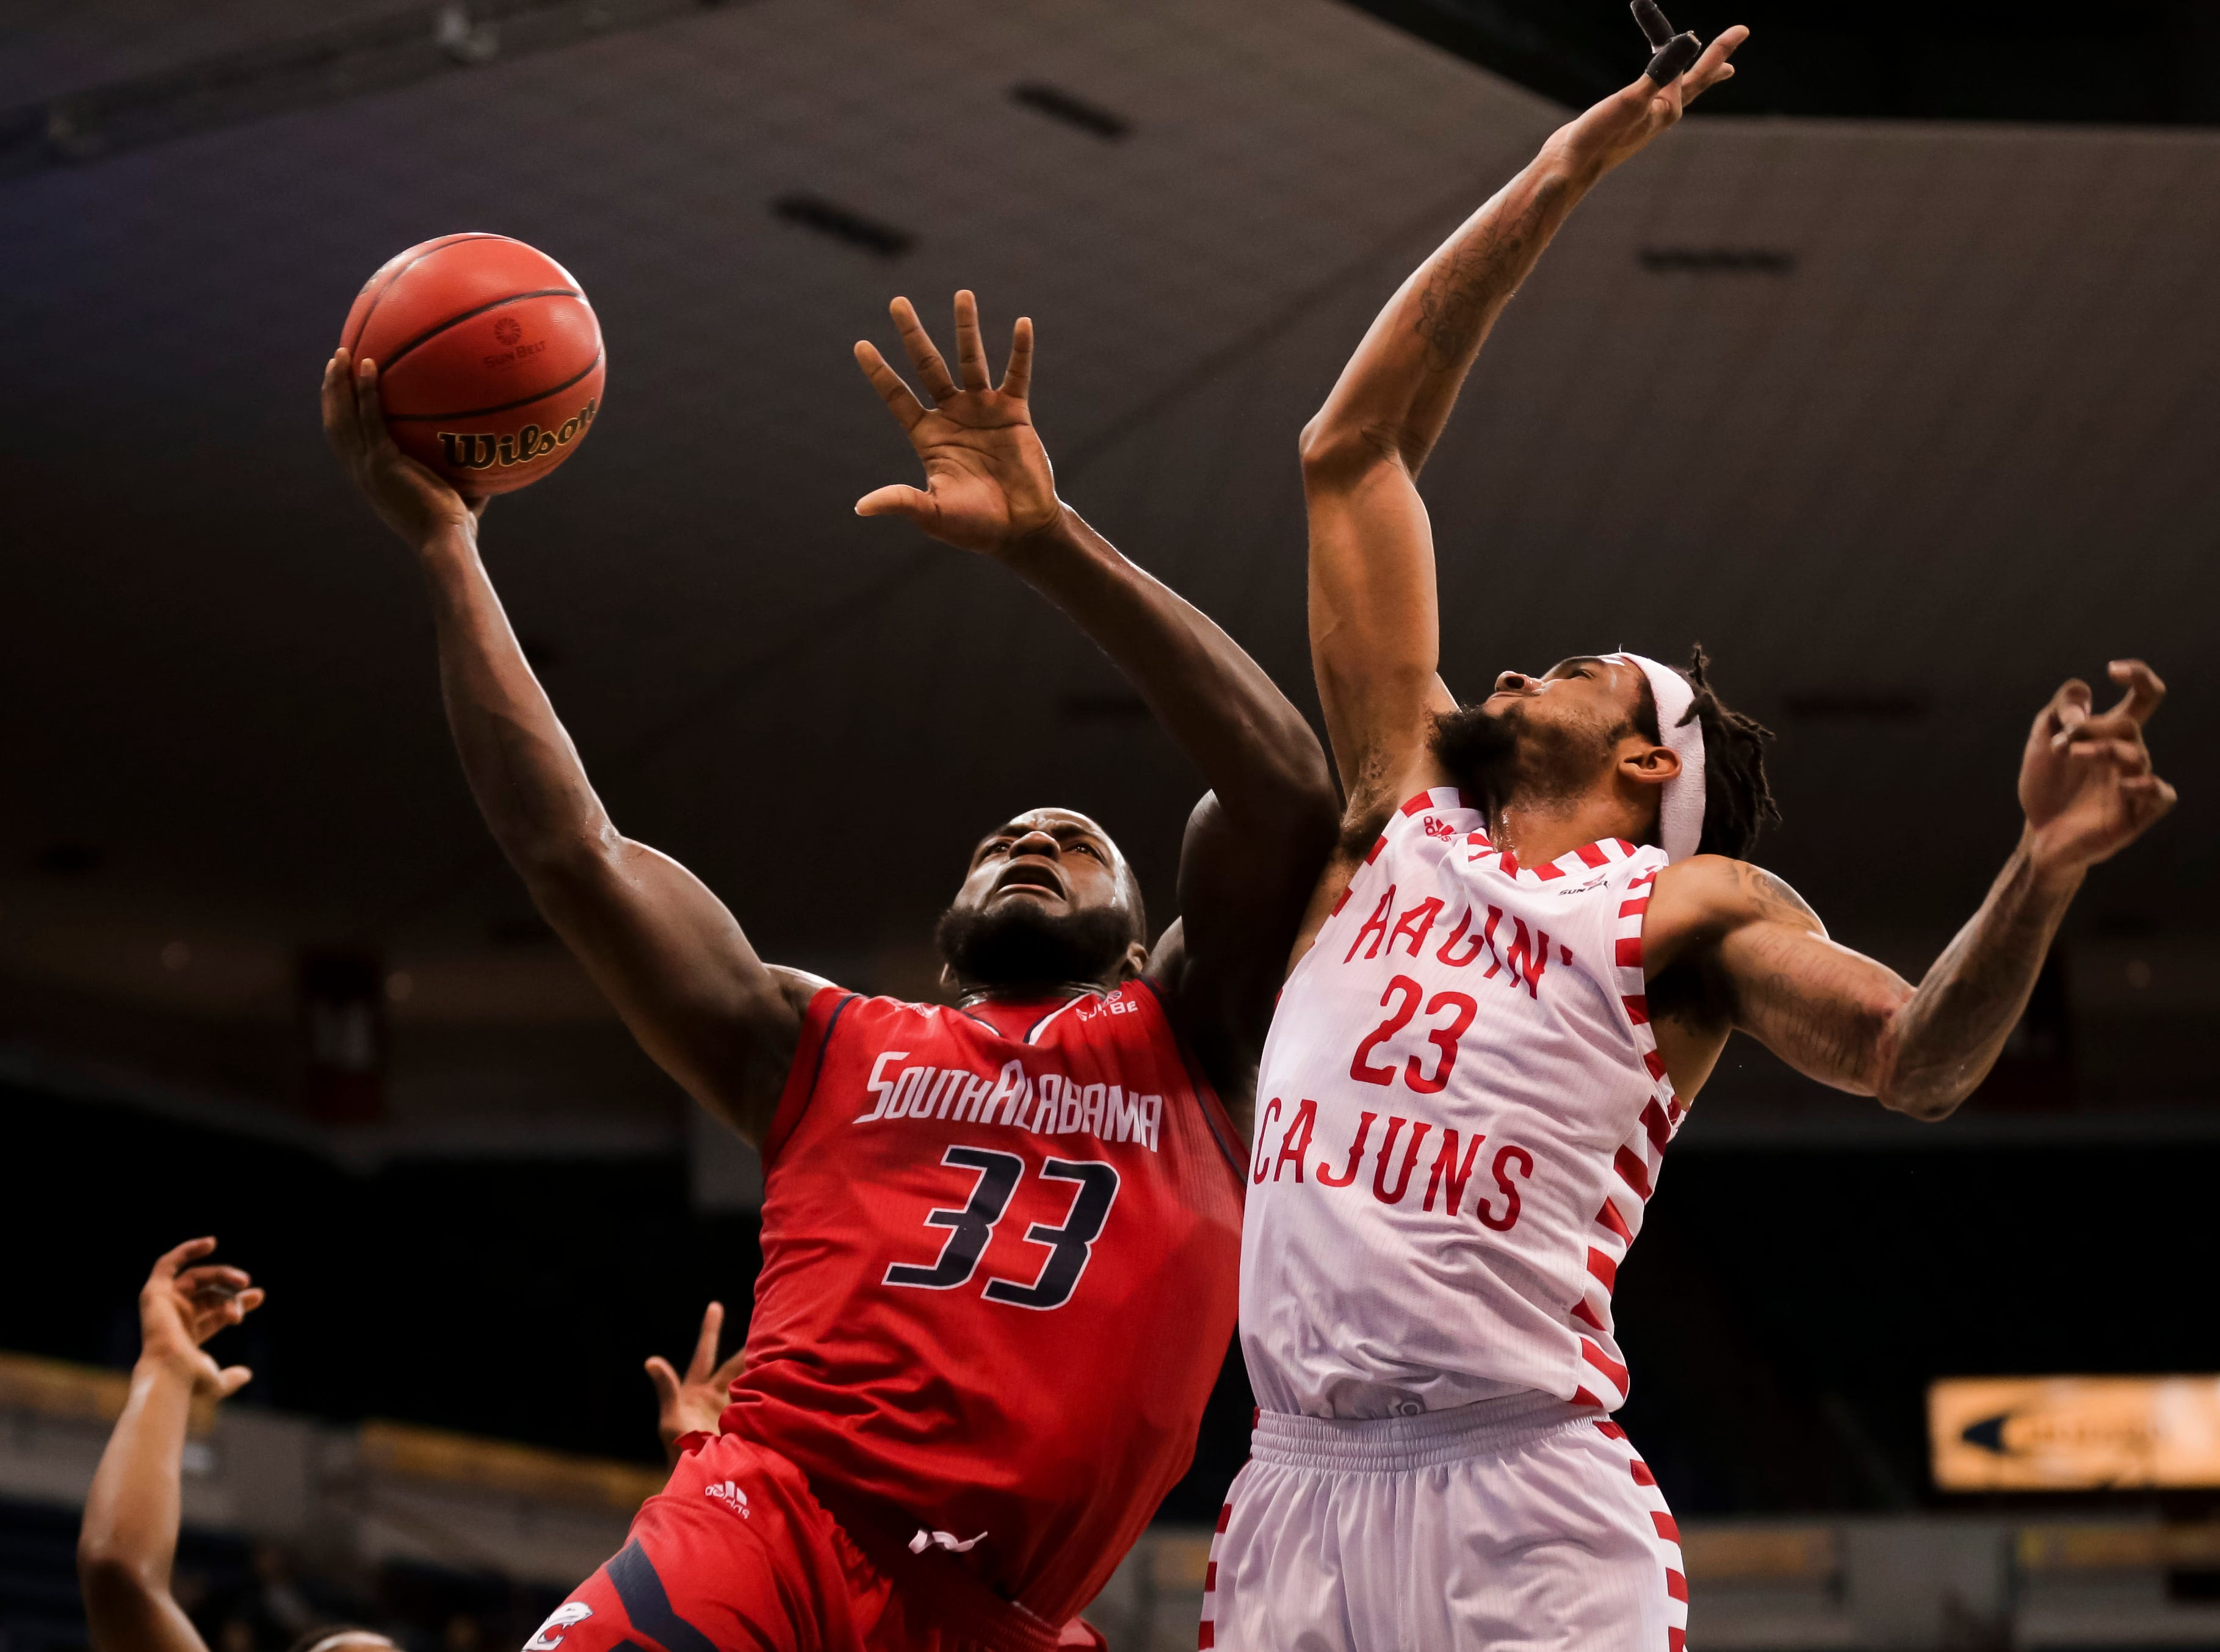 UL's Jakeenan Gant defends, as the Ragin' Cajuns fell to South Alabama, 70-69, on Thursday at the Sun Belt Men's Basketball Championship in New Orleans.